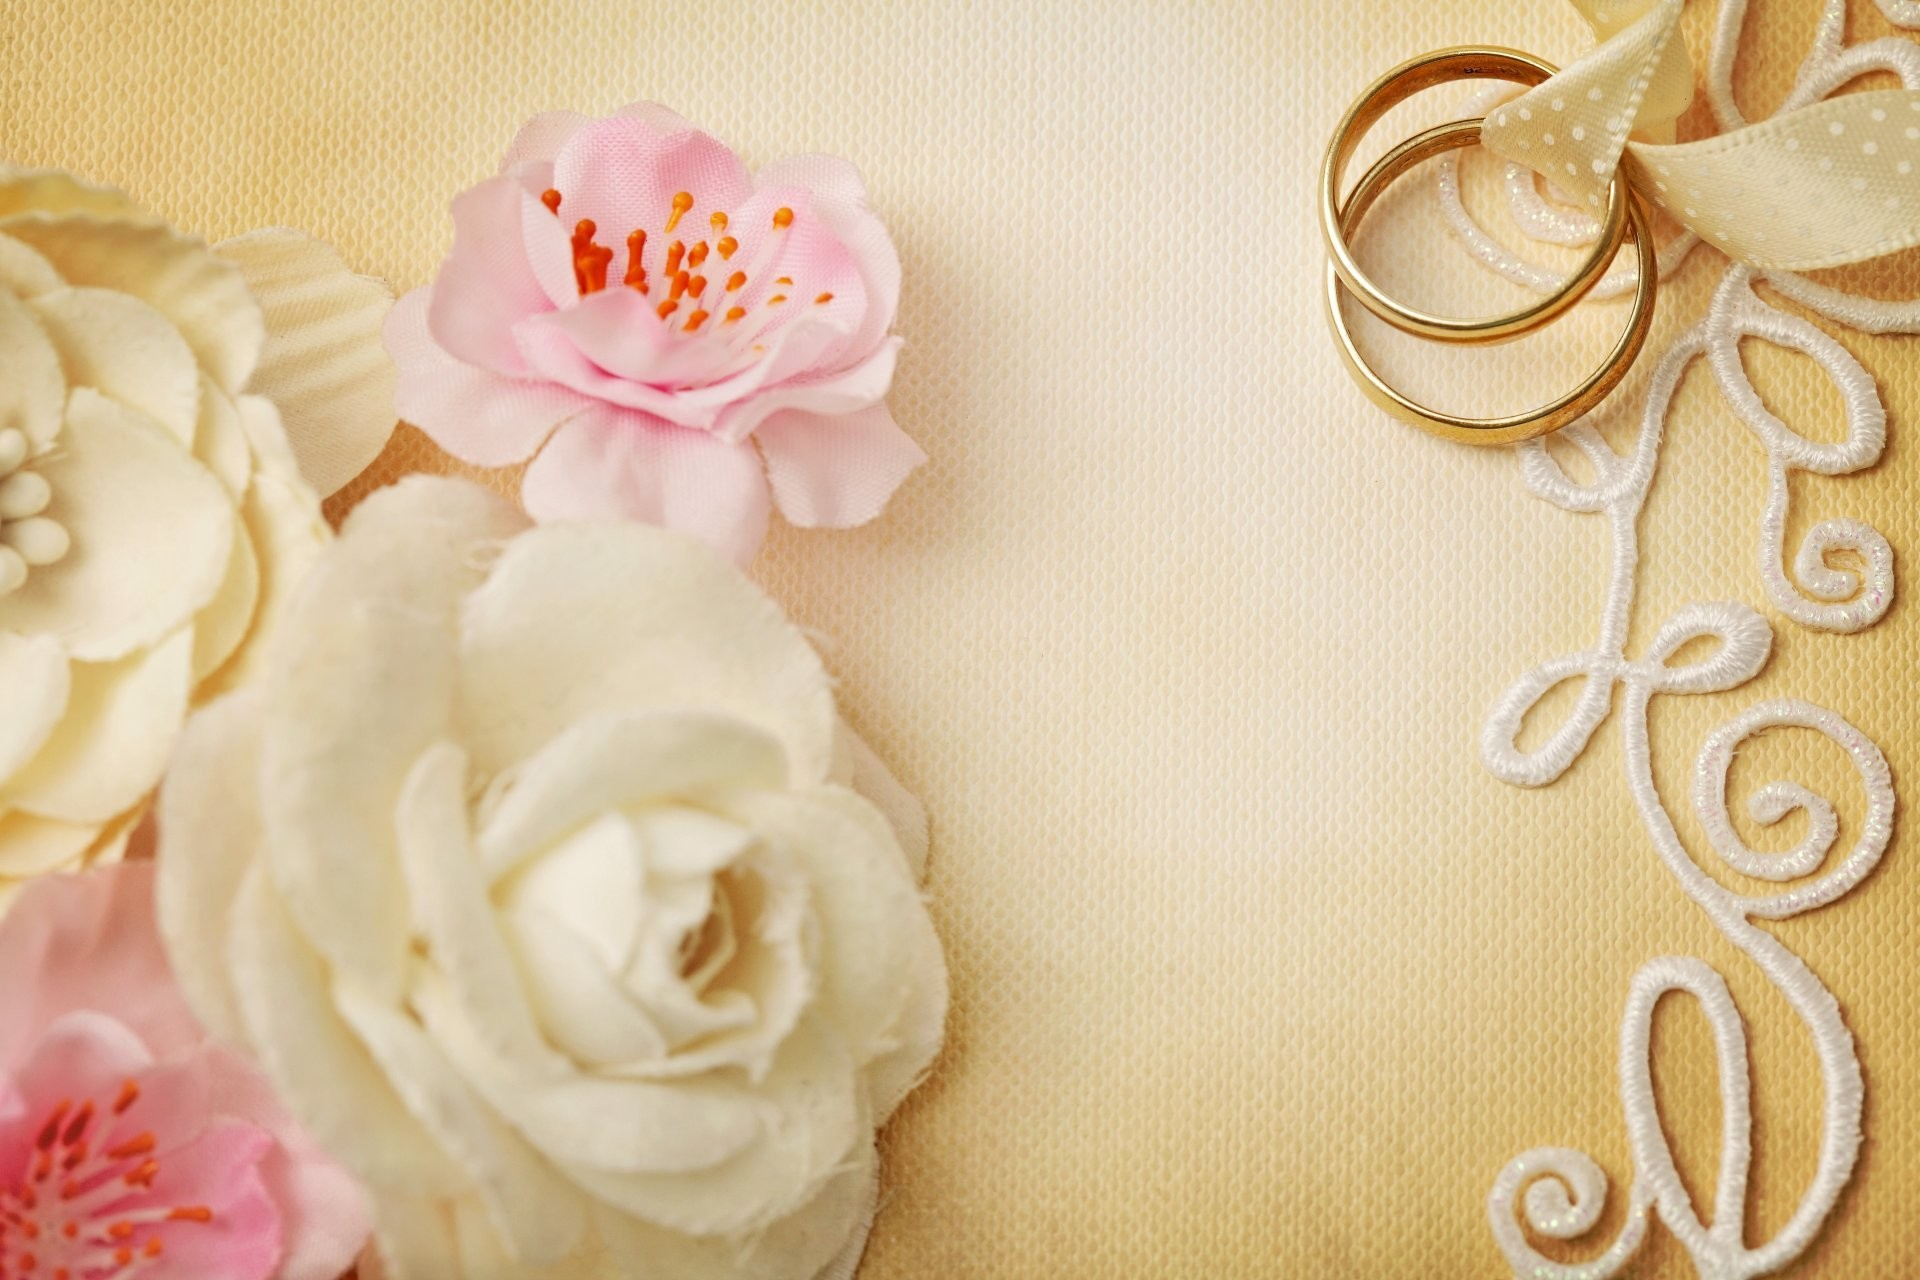 1920x1280 wedding background flowers ring lace soft wedding flower rings